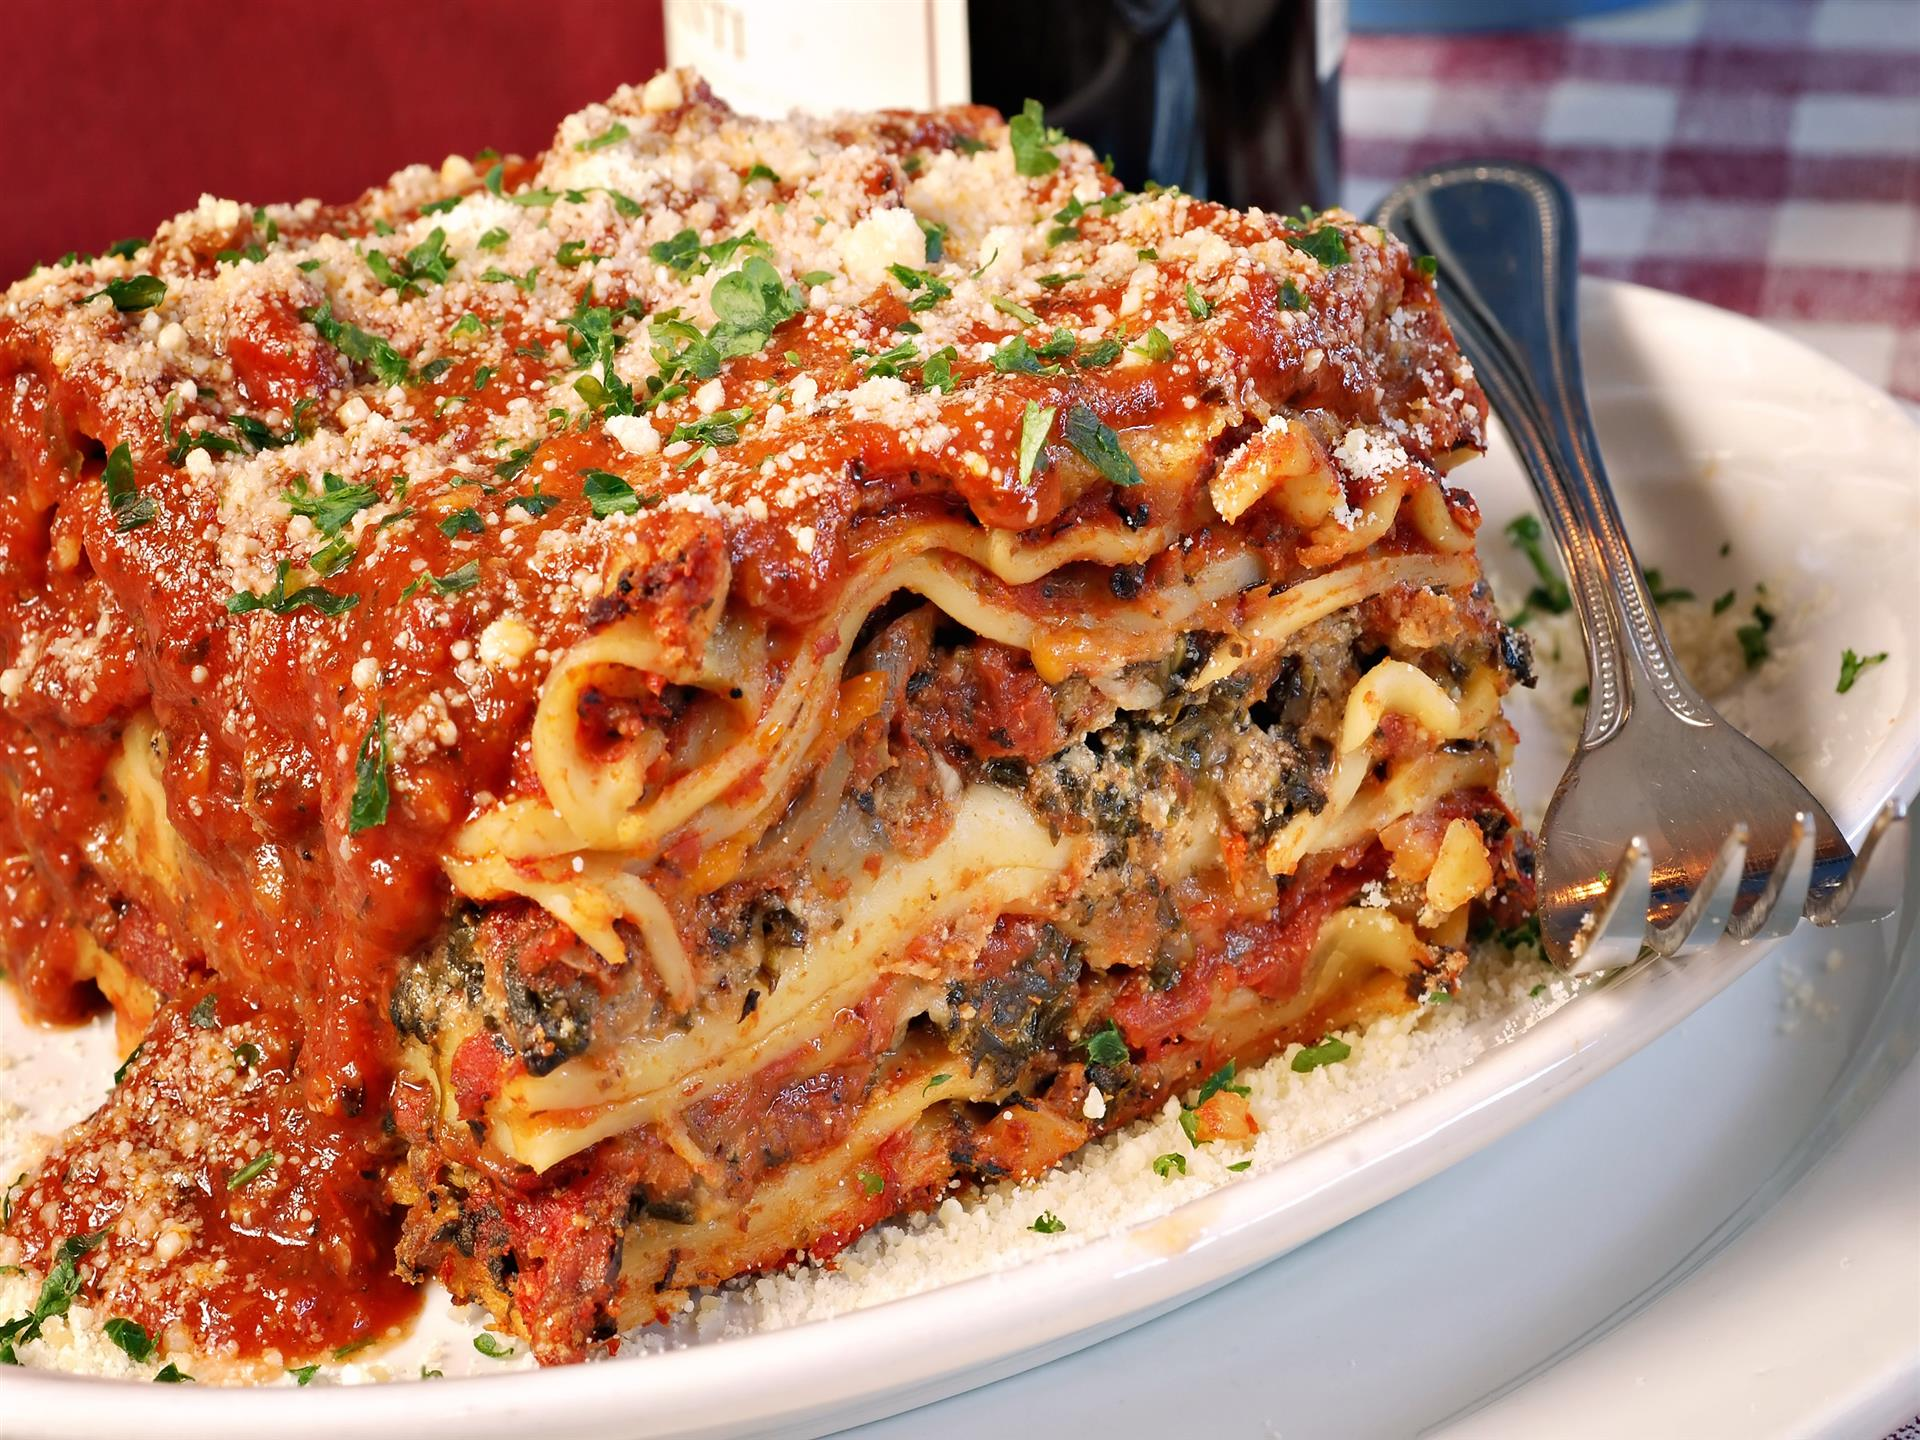 Meat stuffed lasagna with parmesan cheese sprinkled on top and sauce poured over it